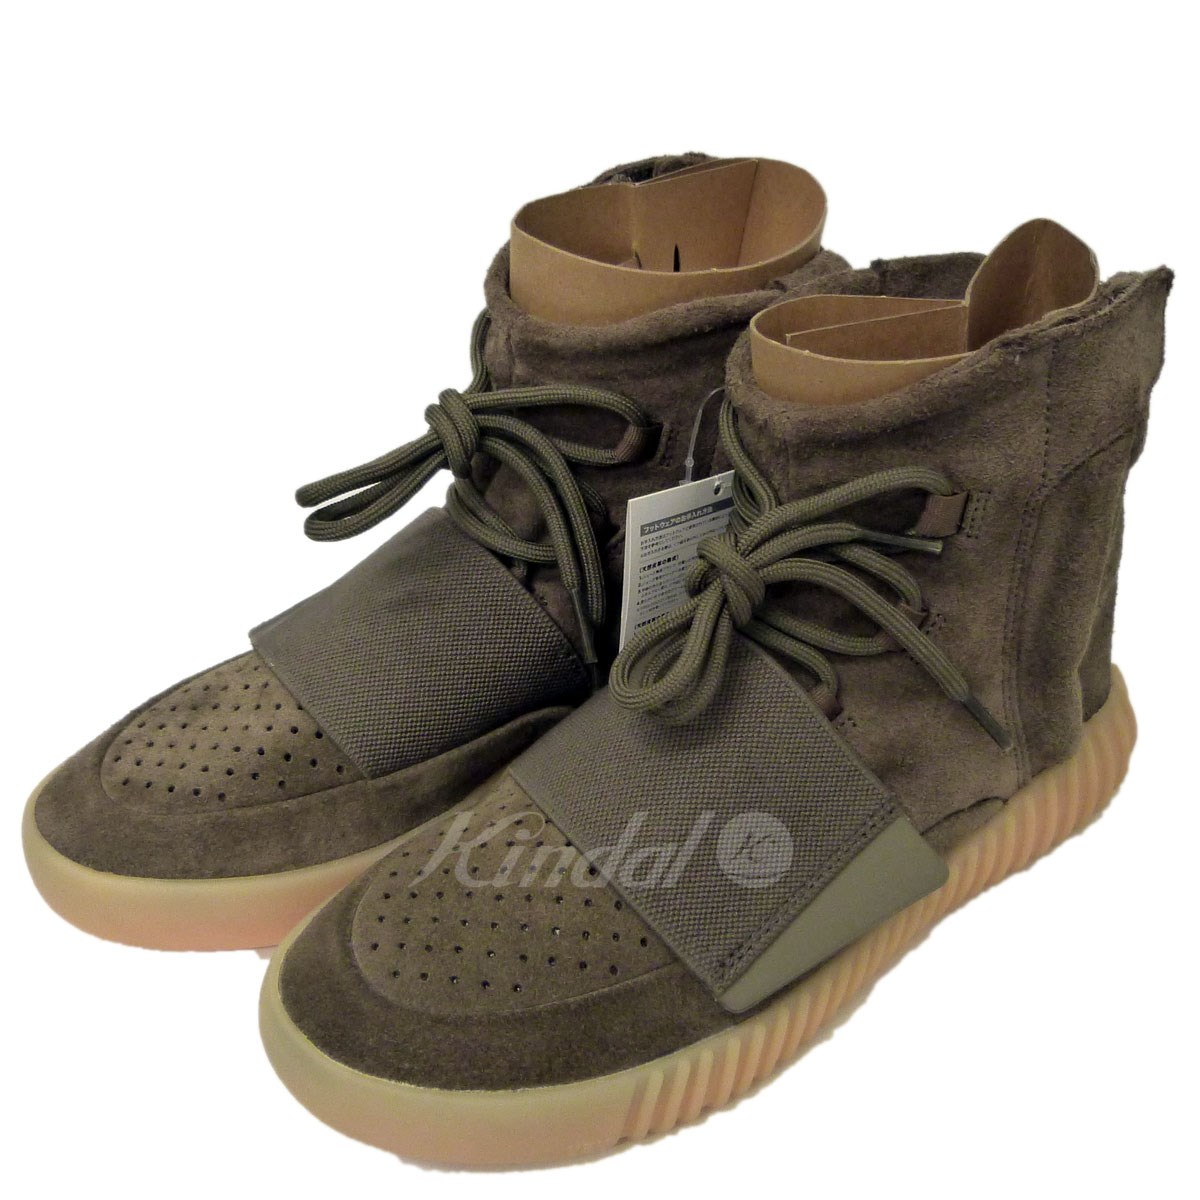 【中古】adidas originals by Kanye West 「YEEZY BOOST 750」スニーカー 【送料無料】 【009385】 【KIND1550】